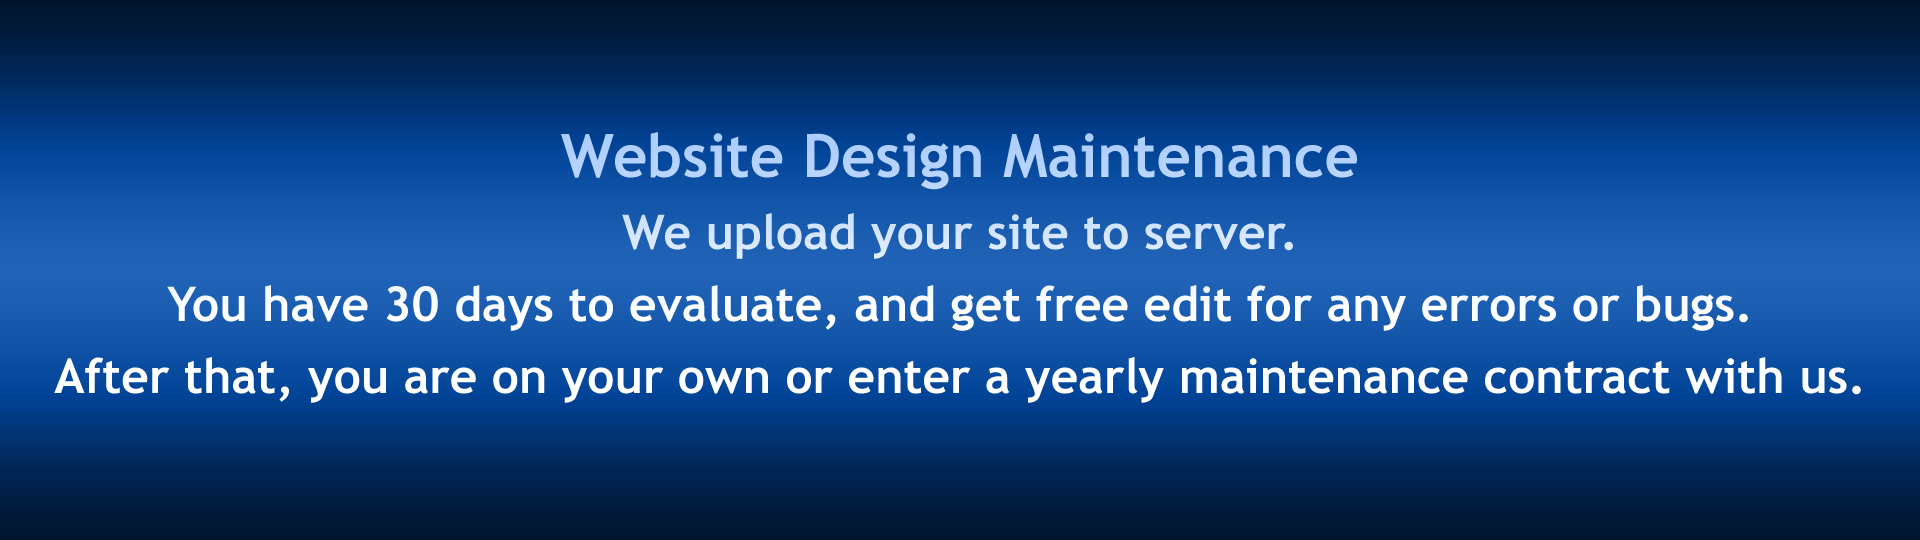 Slide 6 - Website Design Maintenance